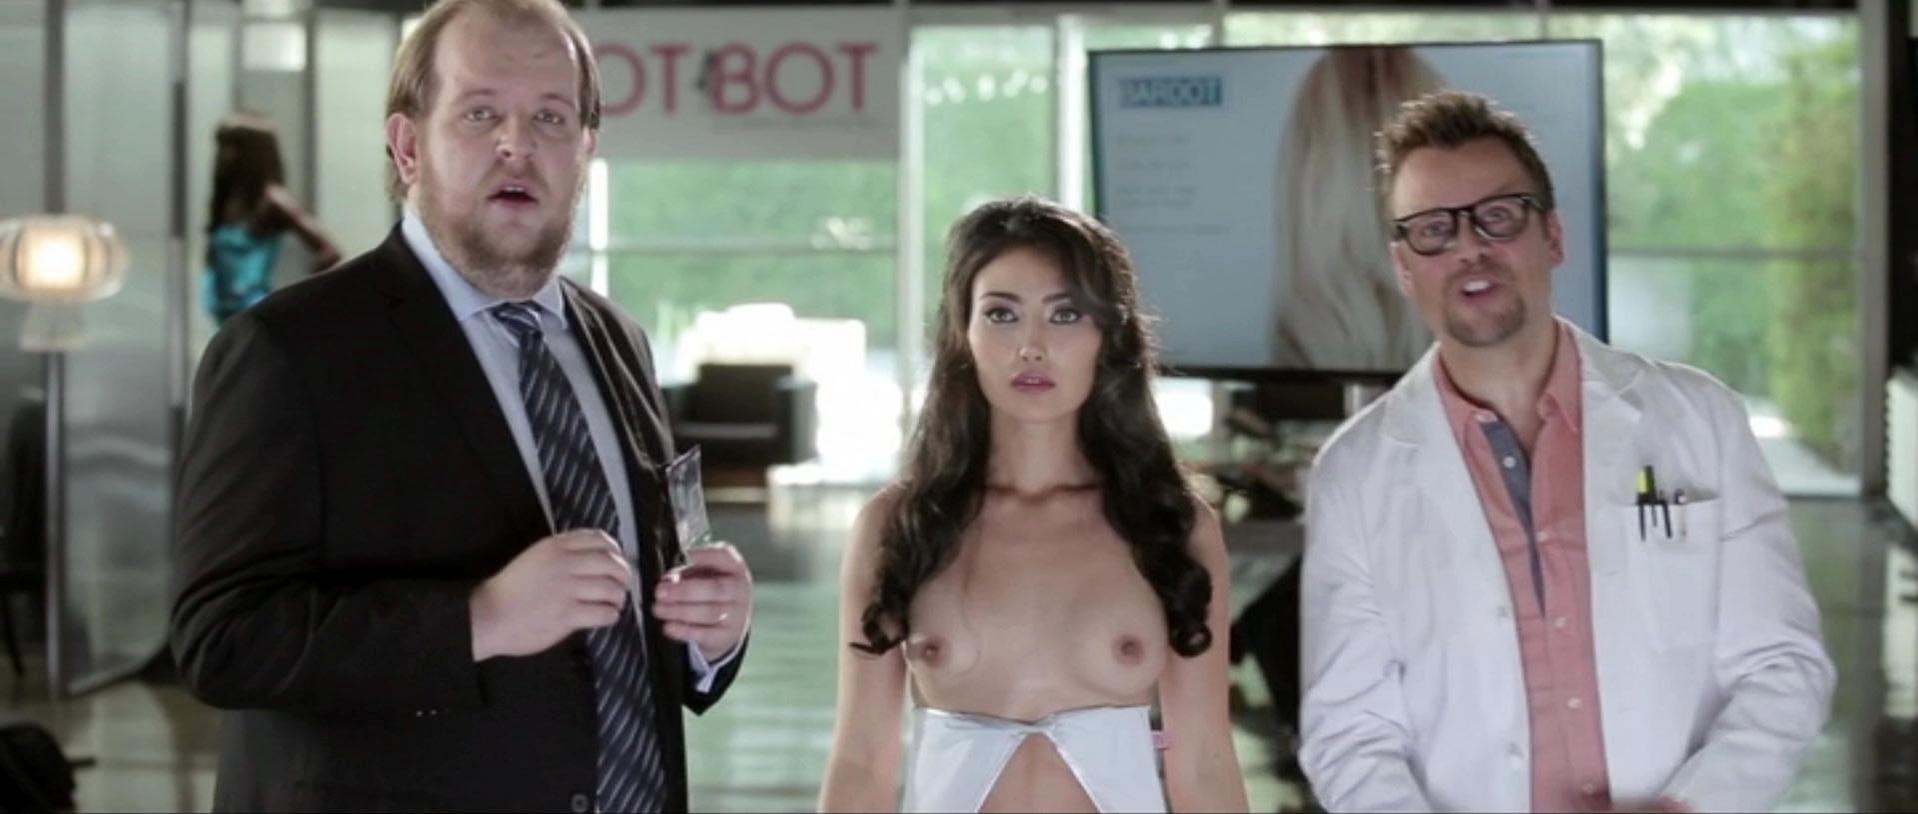 Chasty Ballesteros nude - Hot Bot (2016)